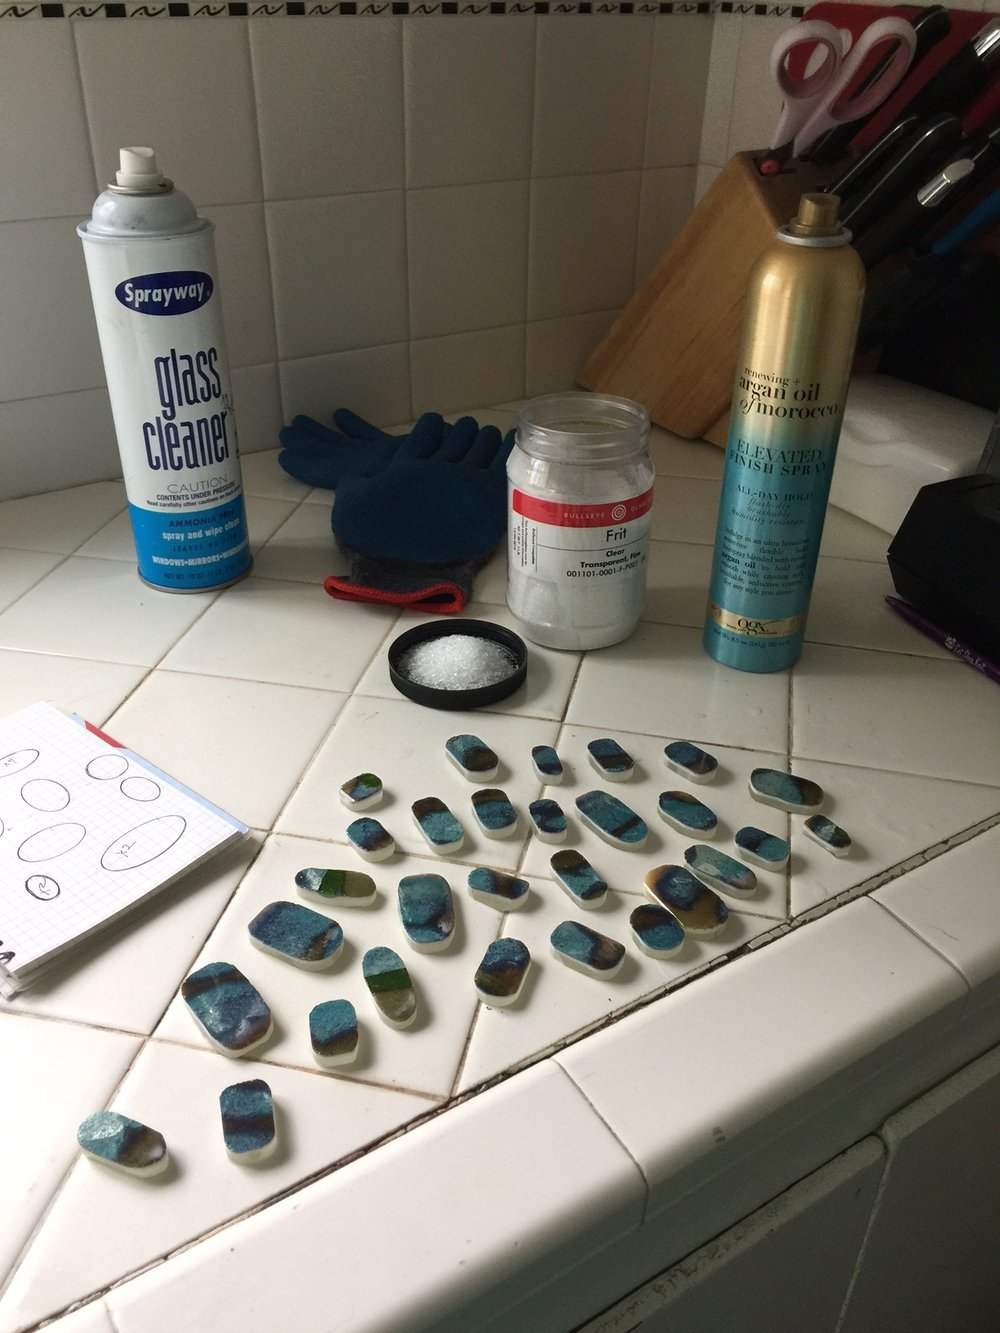 After I complete grinding, I clean the glass thoroughly with glass cleaner and microfiber cloth. I pour a quantity of fine clear frit into a small bowl and grab a can of cheap hair spray.